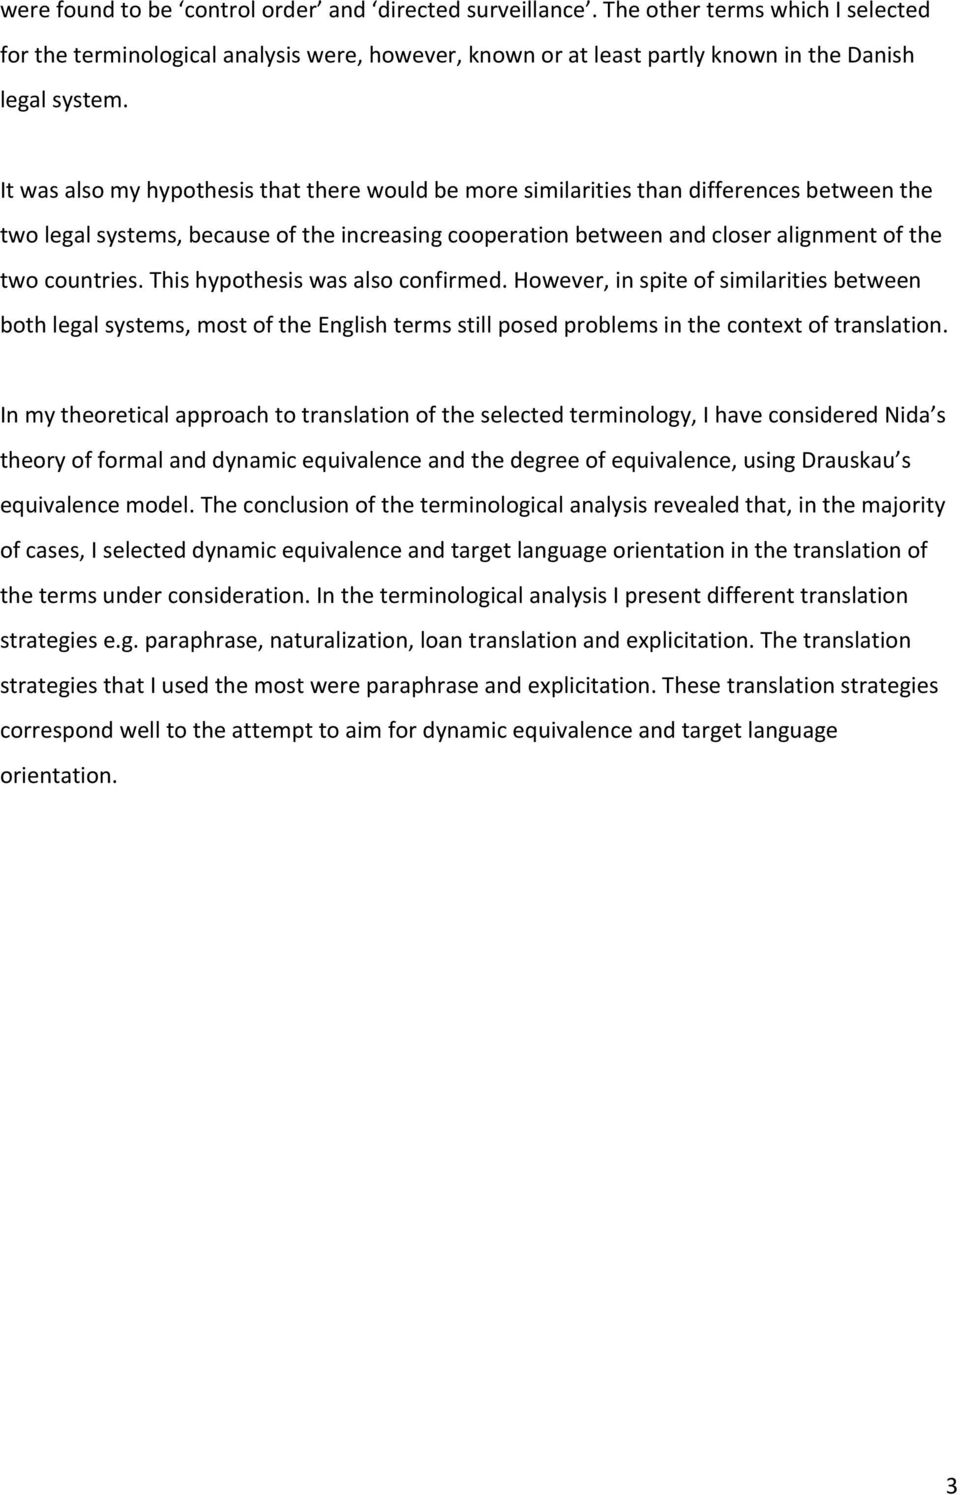 This hypothesis was also confirmed. However, in spite of similarities between both legal systems, most of the English terms still posed problems in the context of translation.